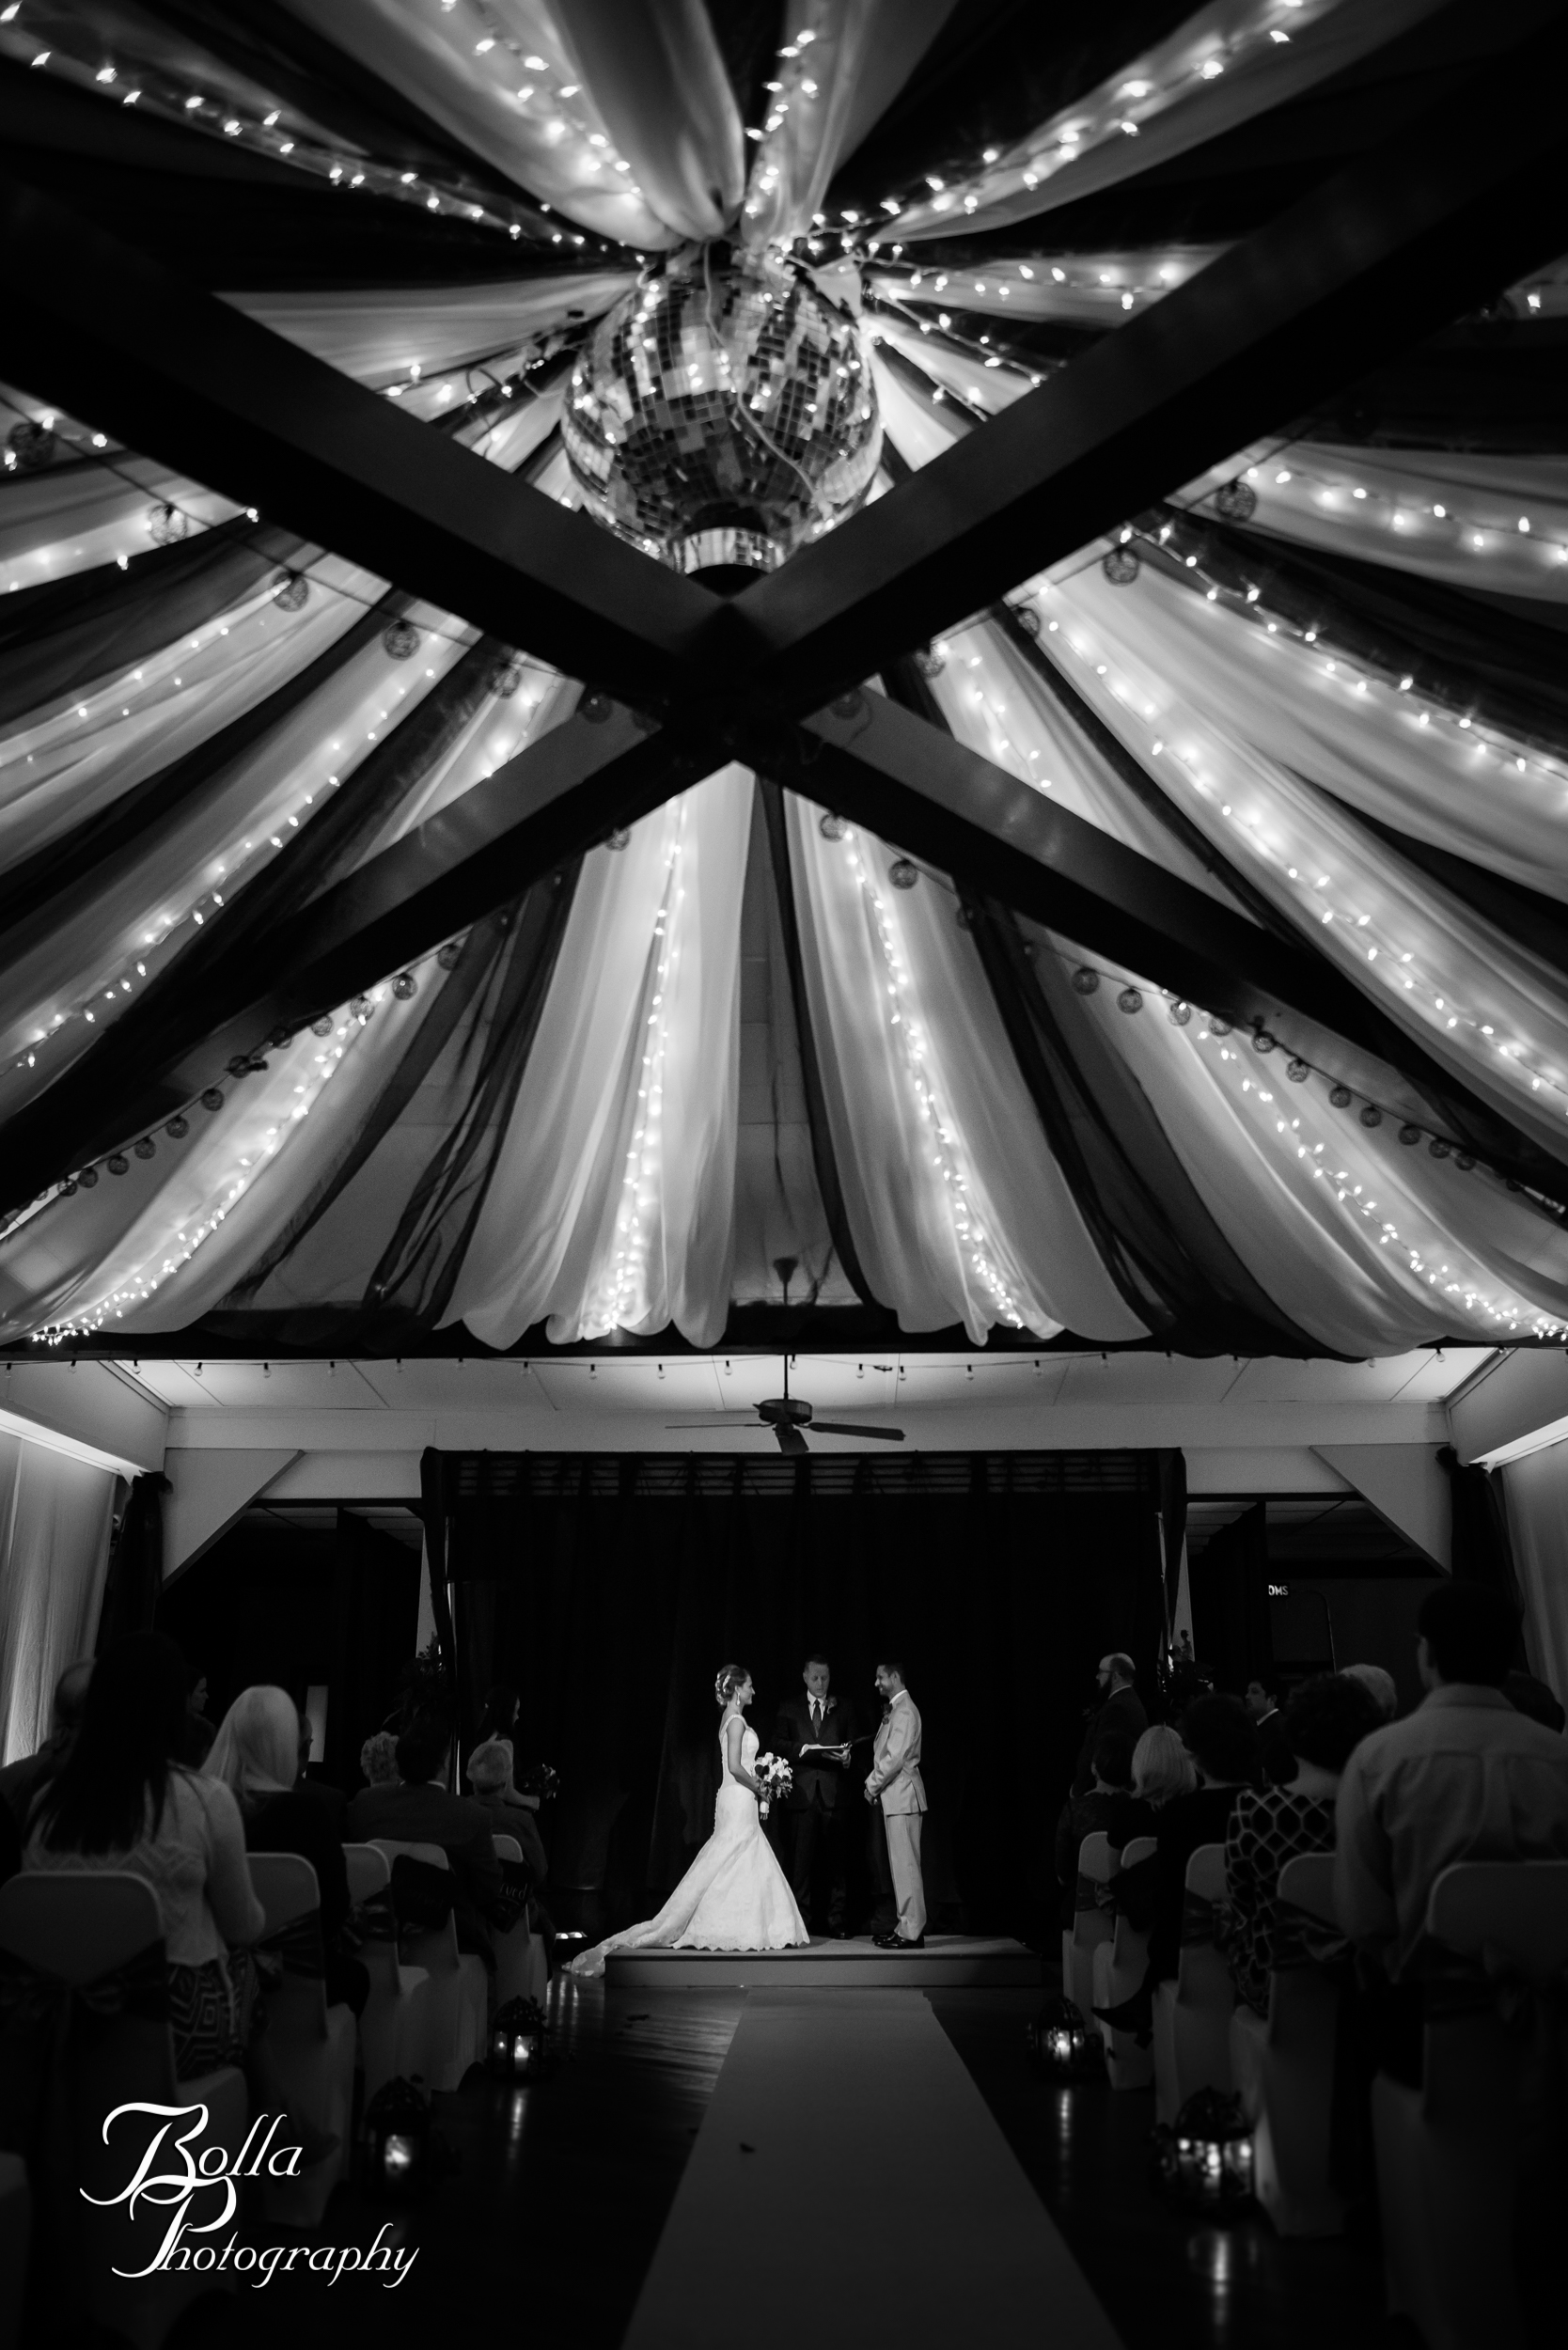 Bolla_photography_edwardsville_wedding_photographer_st_louis_weddings_highland_Allen_Warren_winter_red-0225.jpg